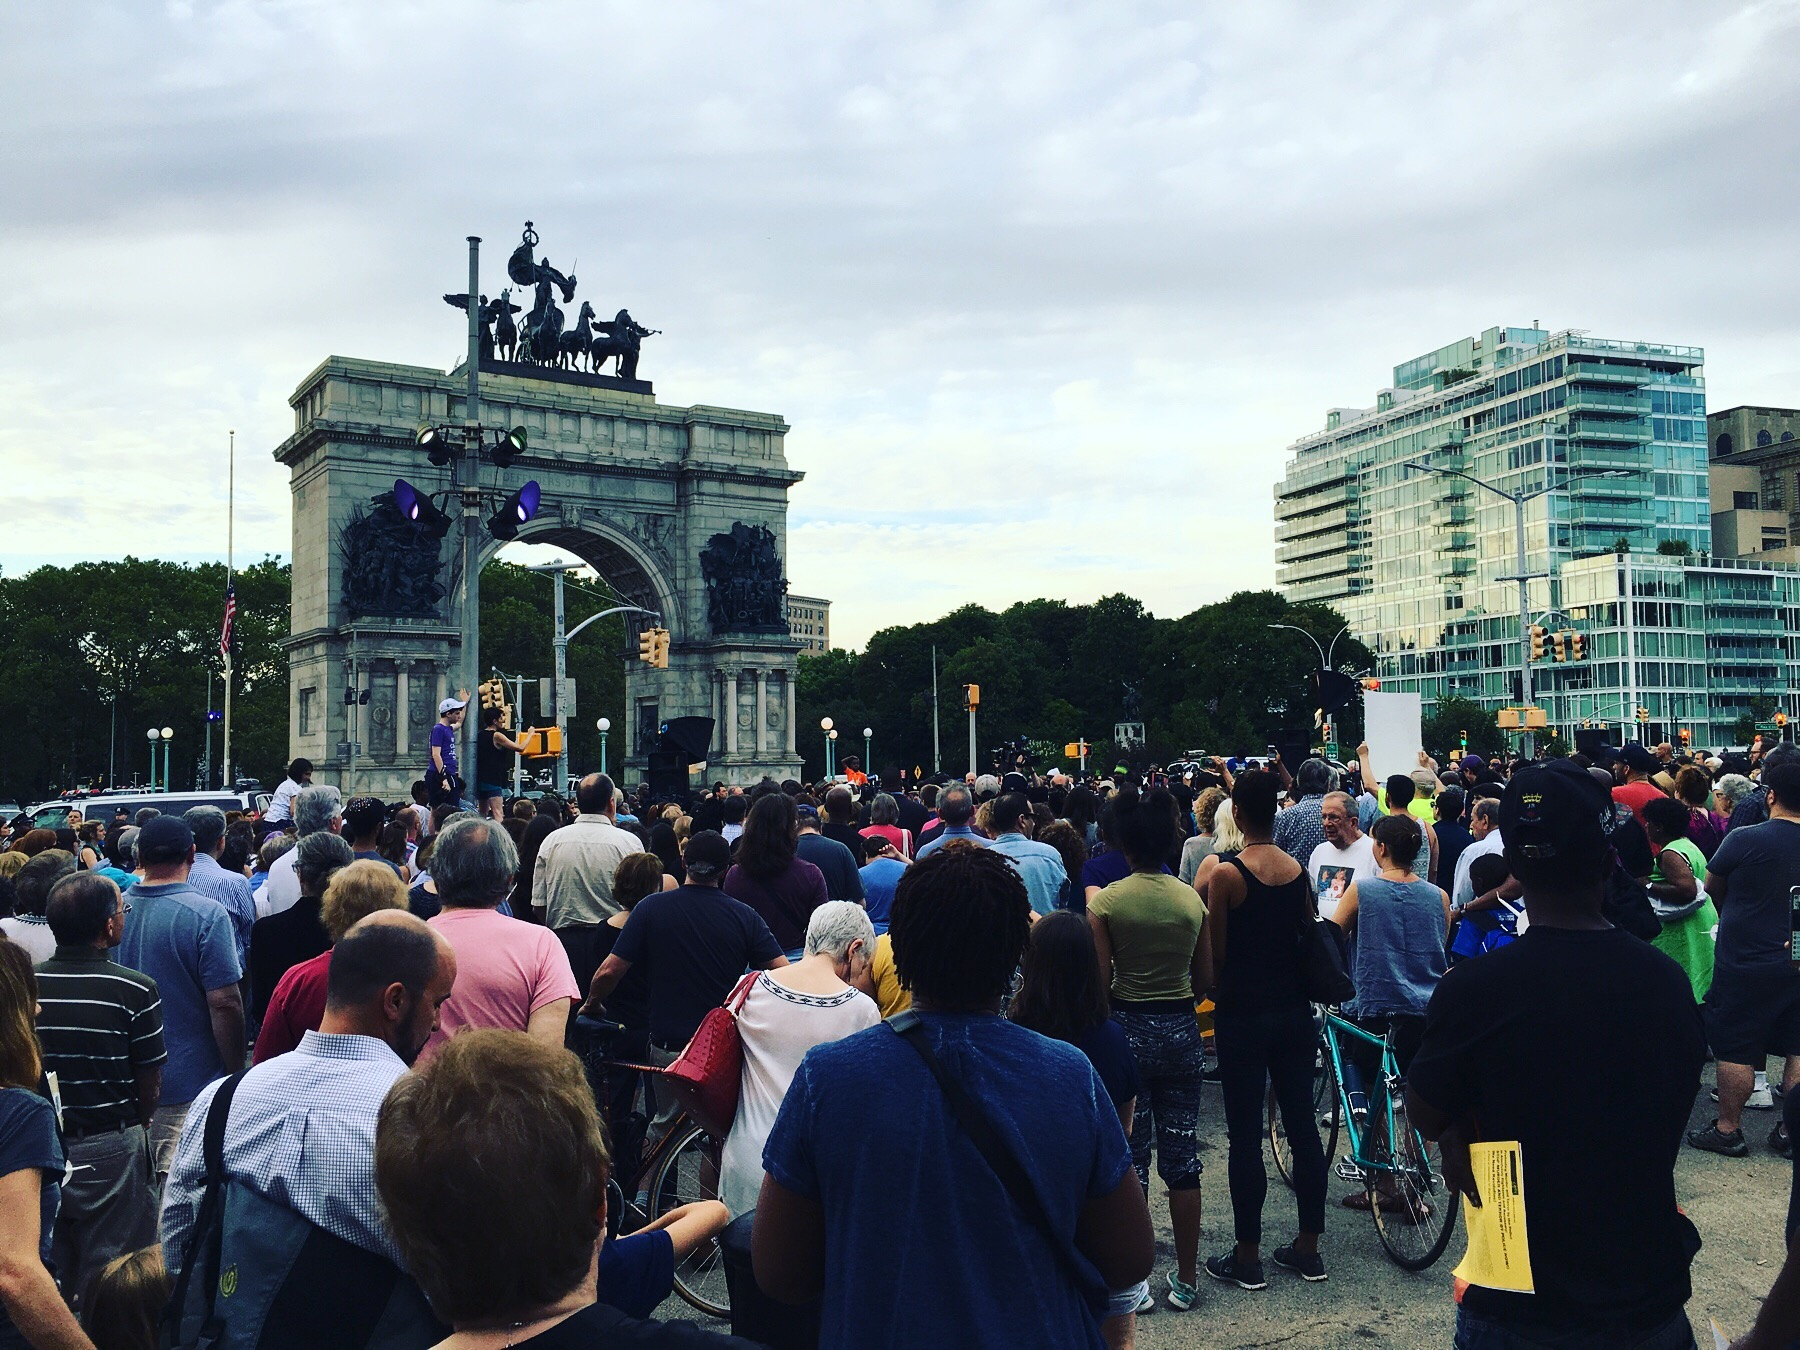 Hundreds from around the borough gathering to pray at Grand Army Plaza for unity, reconciliation and peace